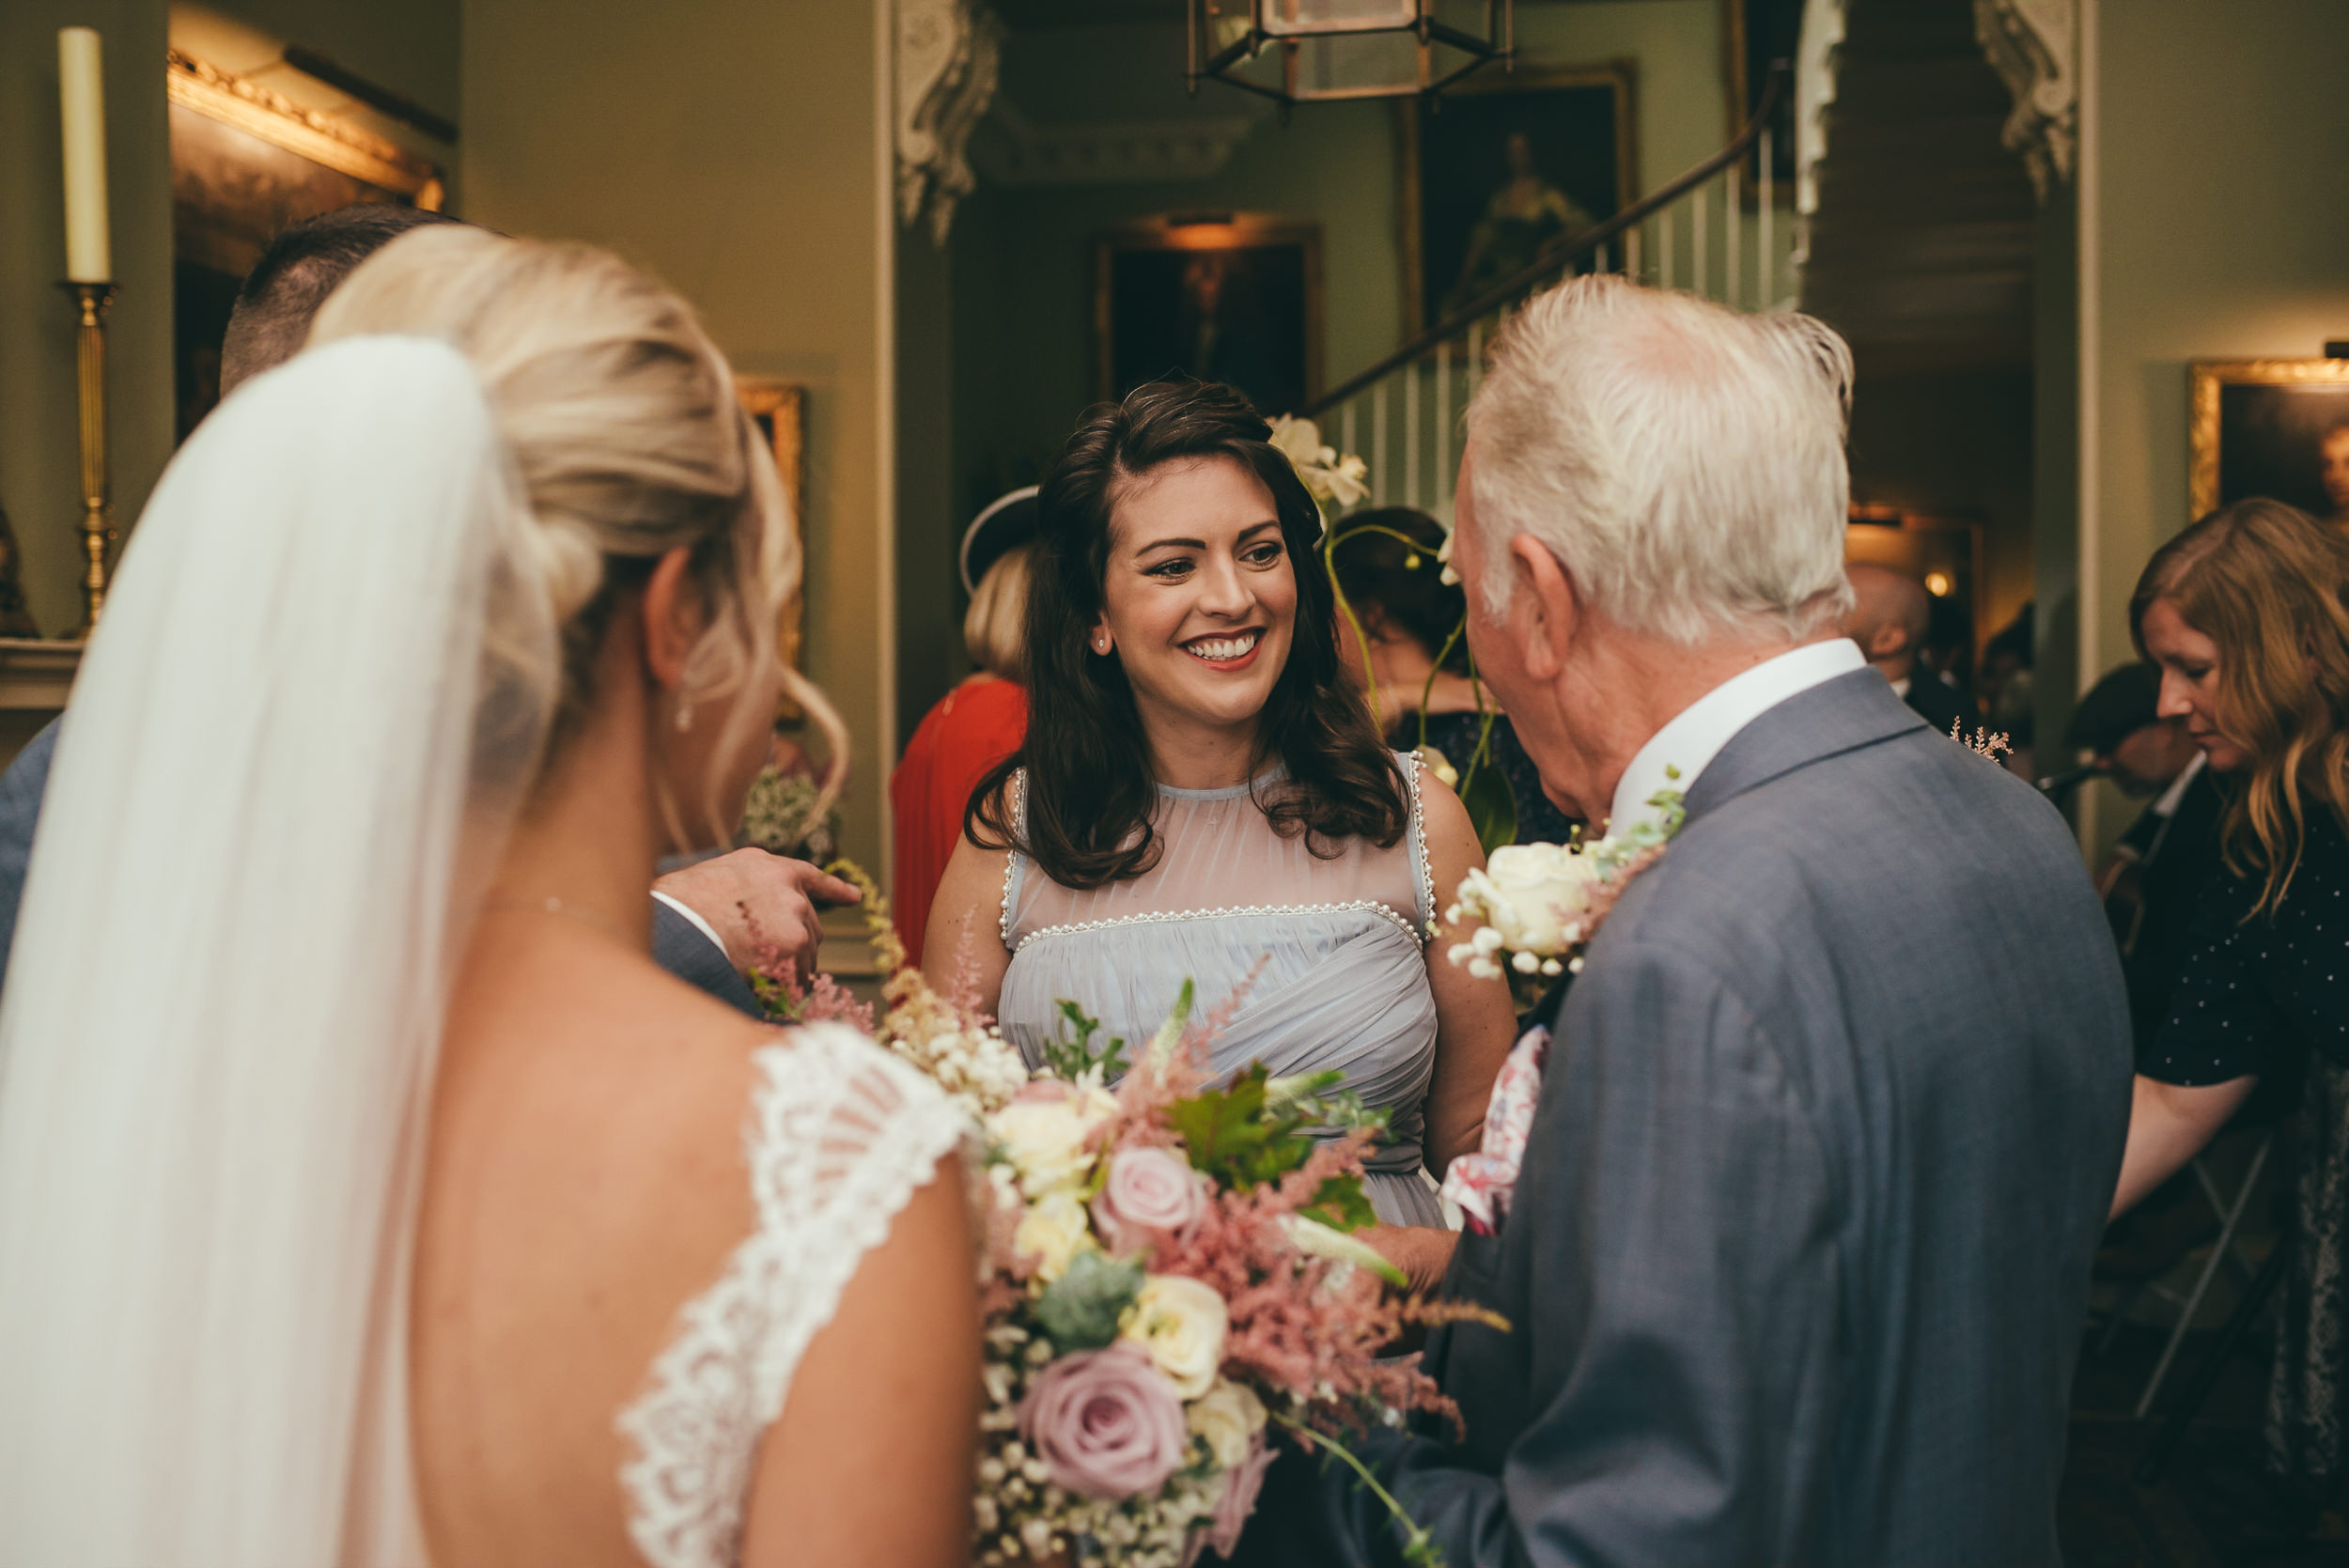 Norwood Park wedding photographer | Matt Andrew Photography